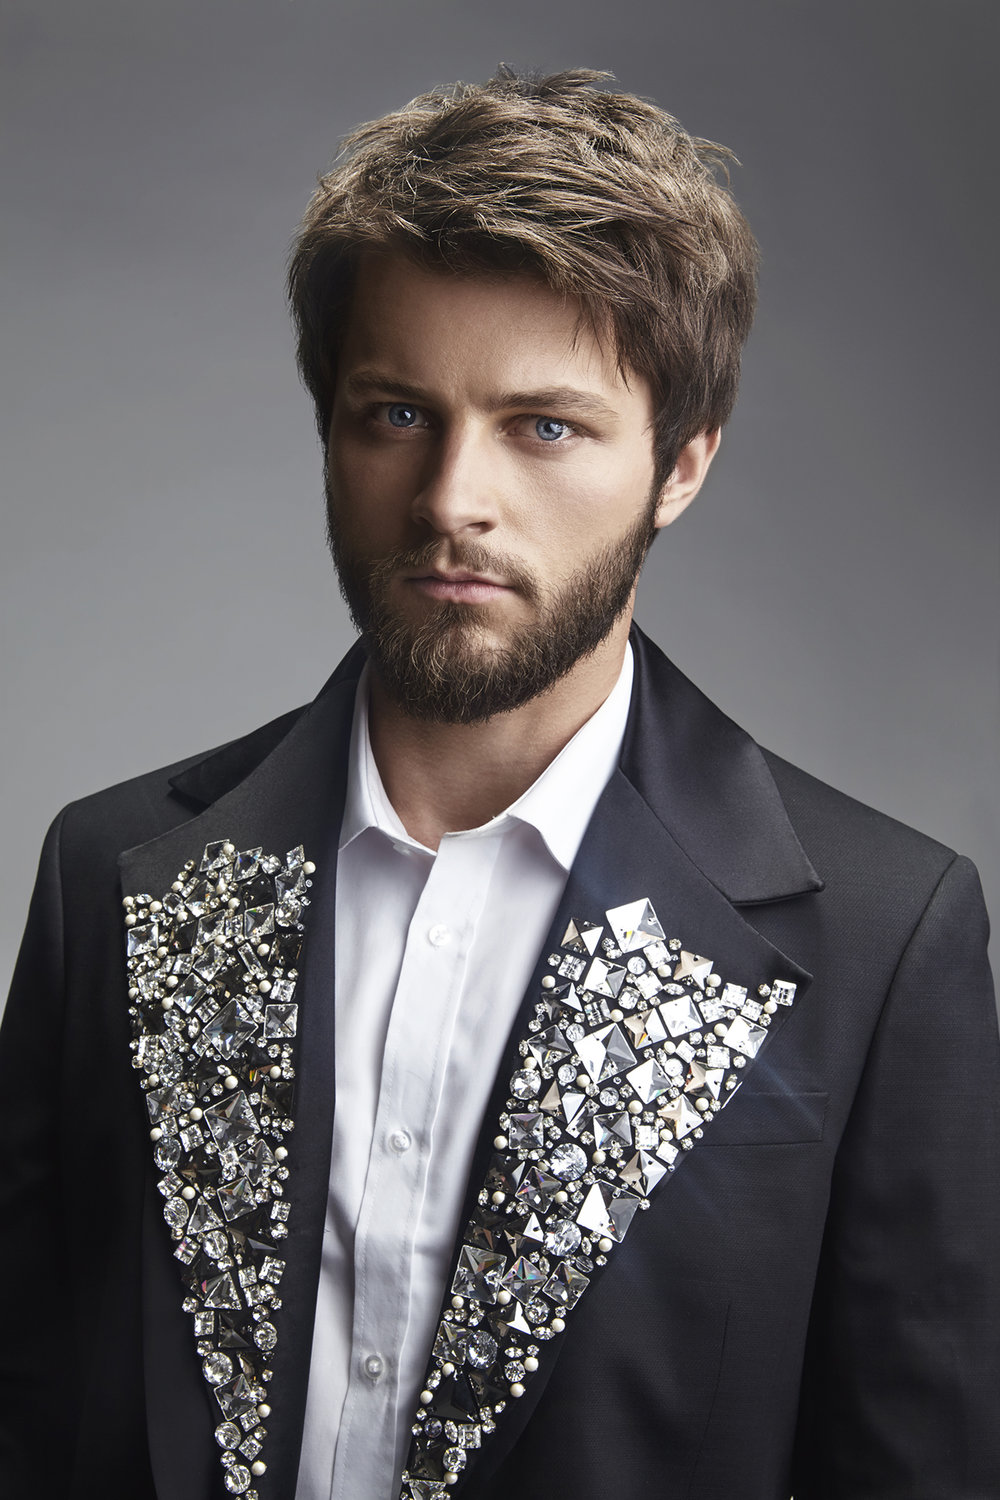 Fall-Hair-Collection-Shoot-for-Studio-Alf-Frisør-by-Dana-Cole-Photography-male-model-in-tux-jeweled-suit-bearded-male-advertising.jpg